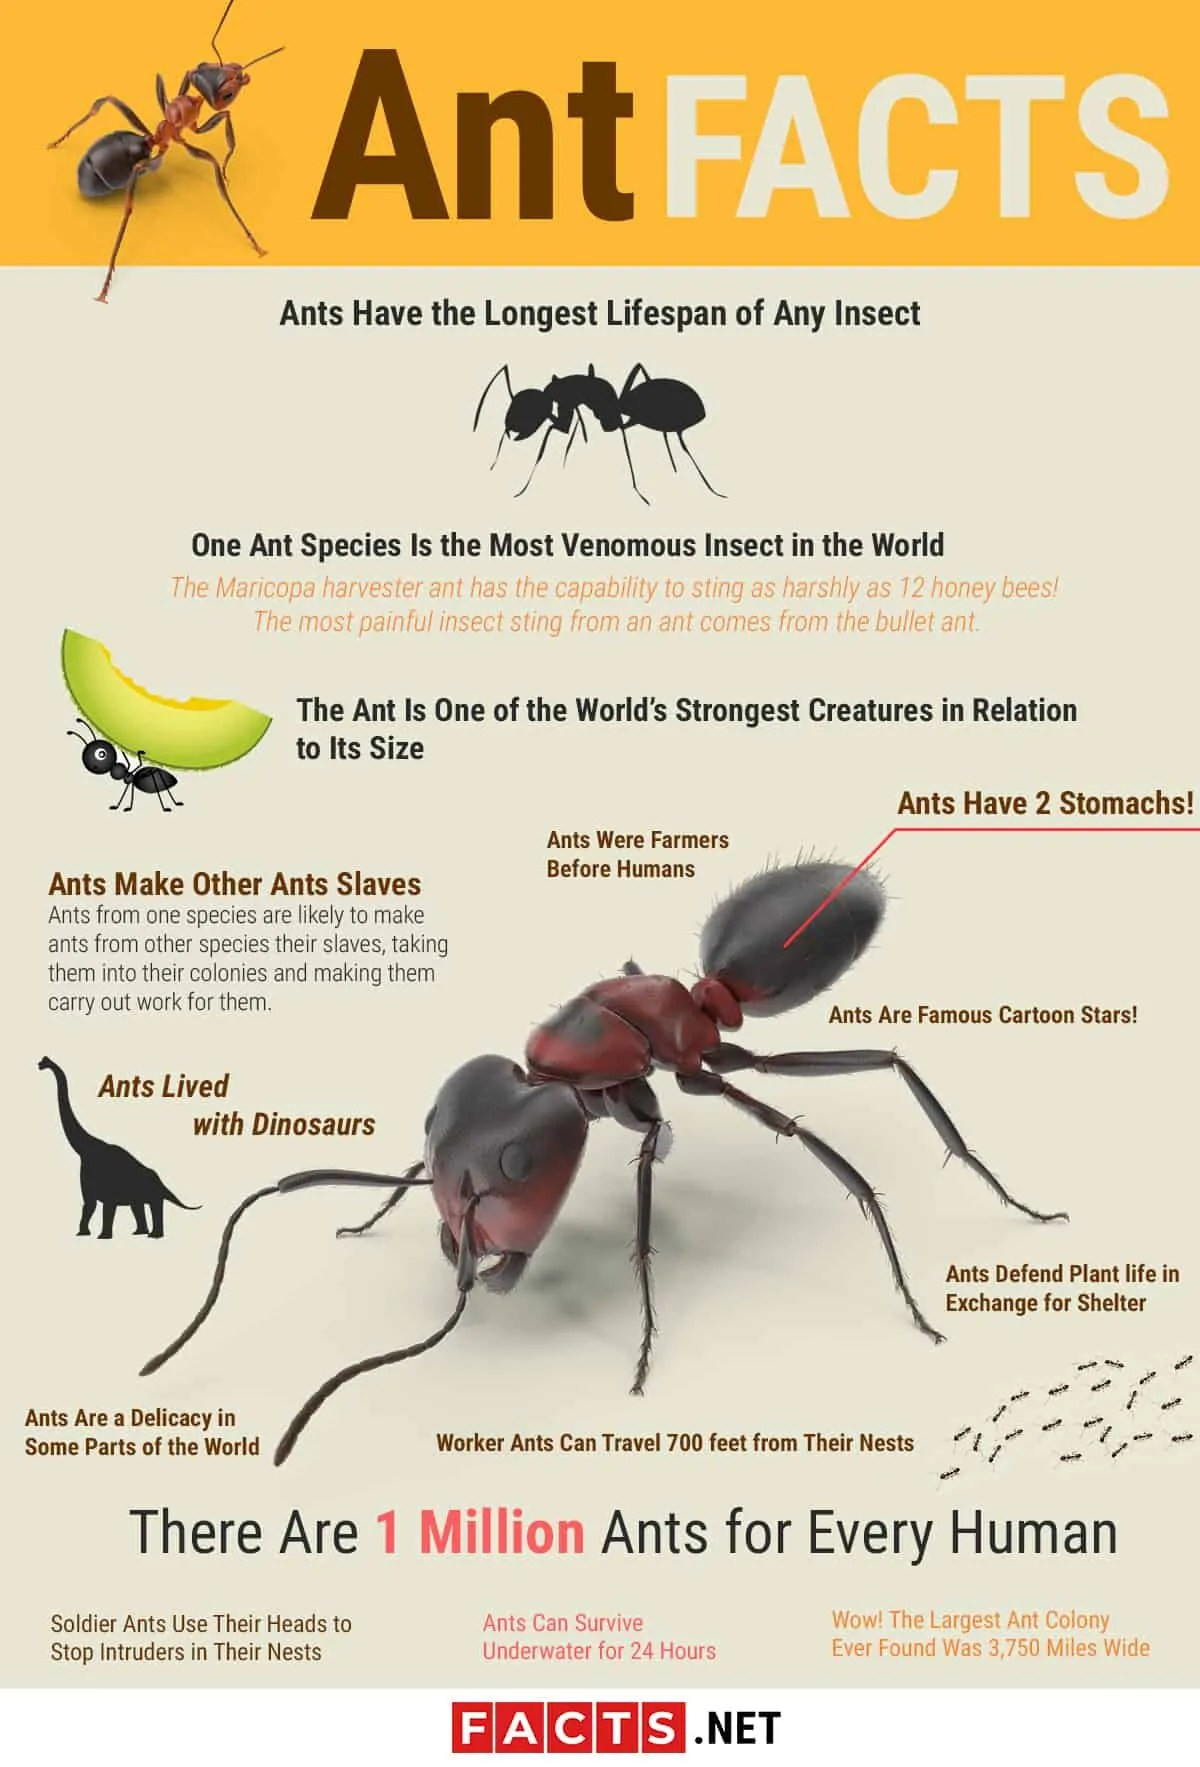 Top 15 Ant Facts